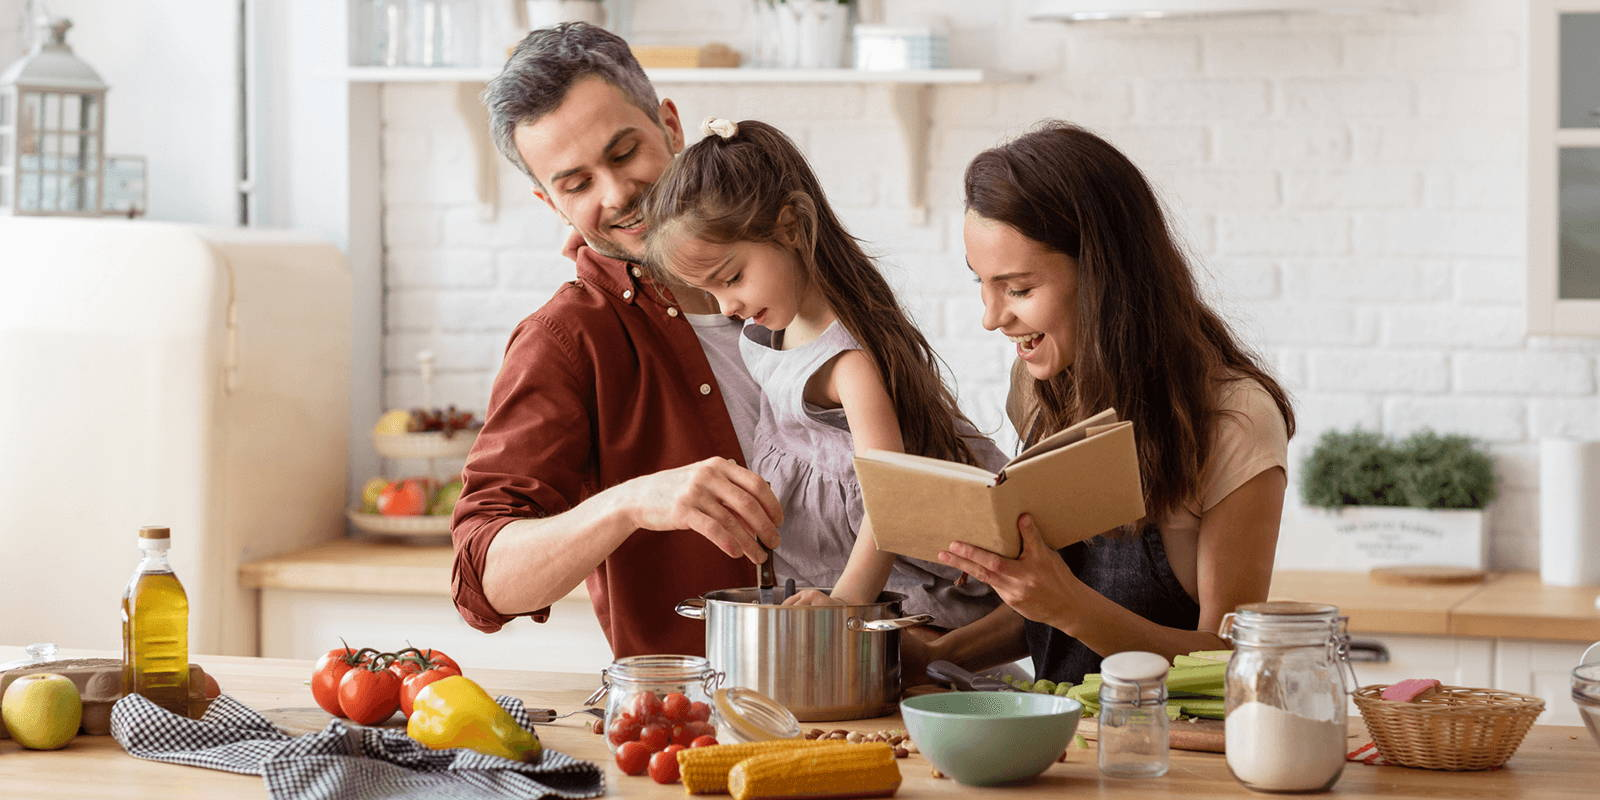 Father, mother, and daughter playfully cooking together.